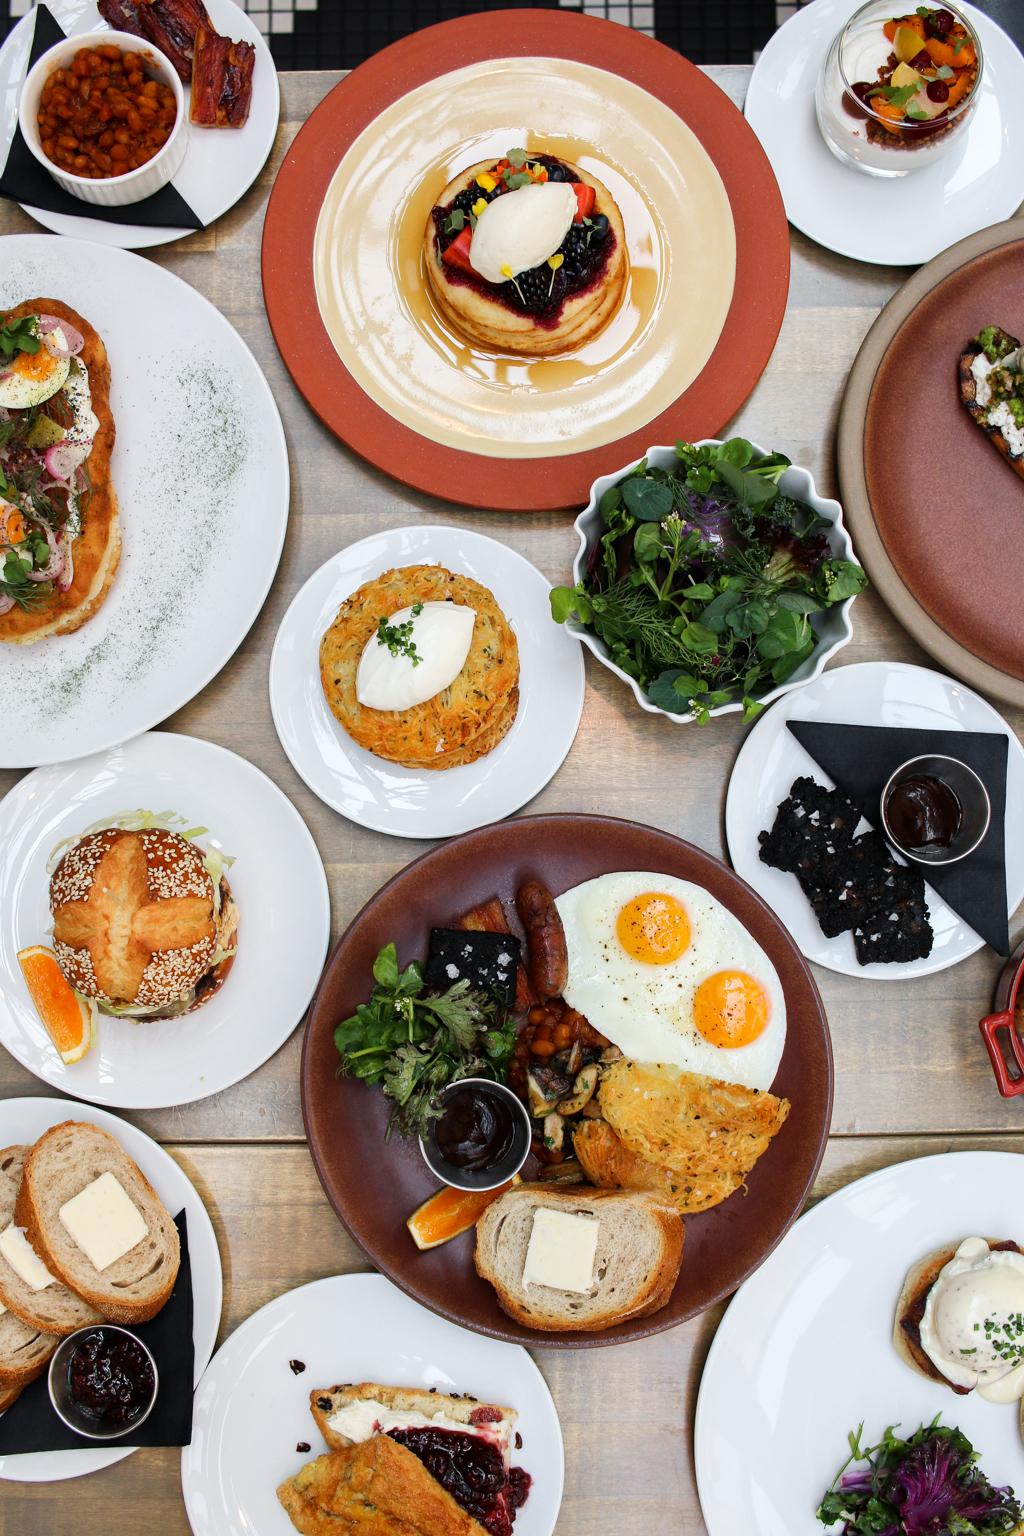 Brunch at L'Abattoir in Vancouver, British Columbia is recommended by chefs in Dirt Road Travels city guide.